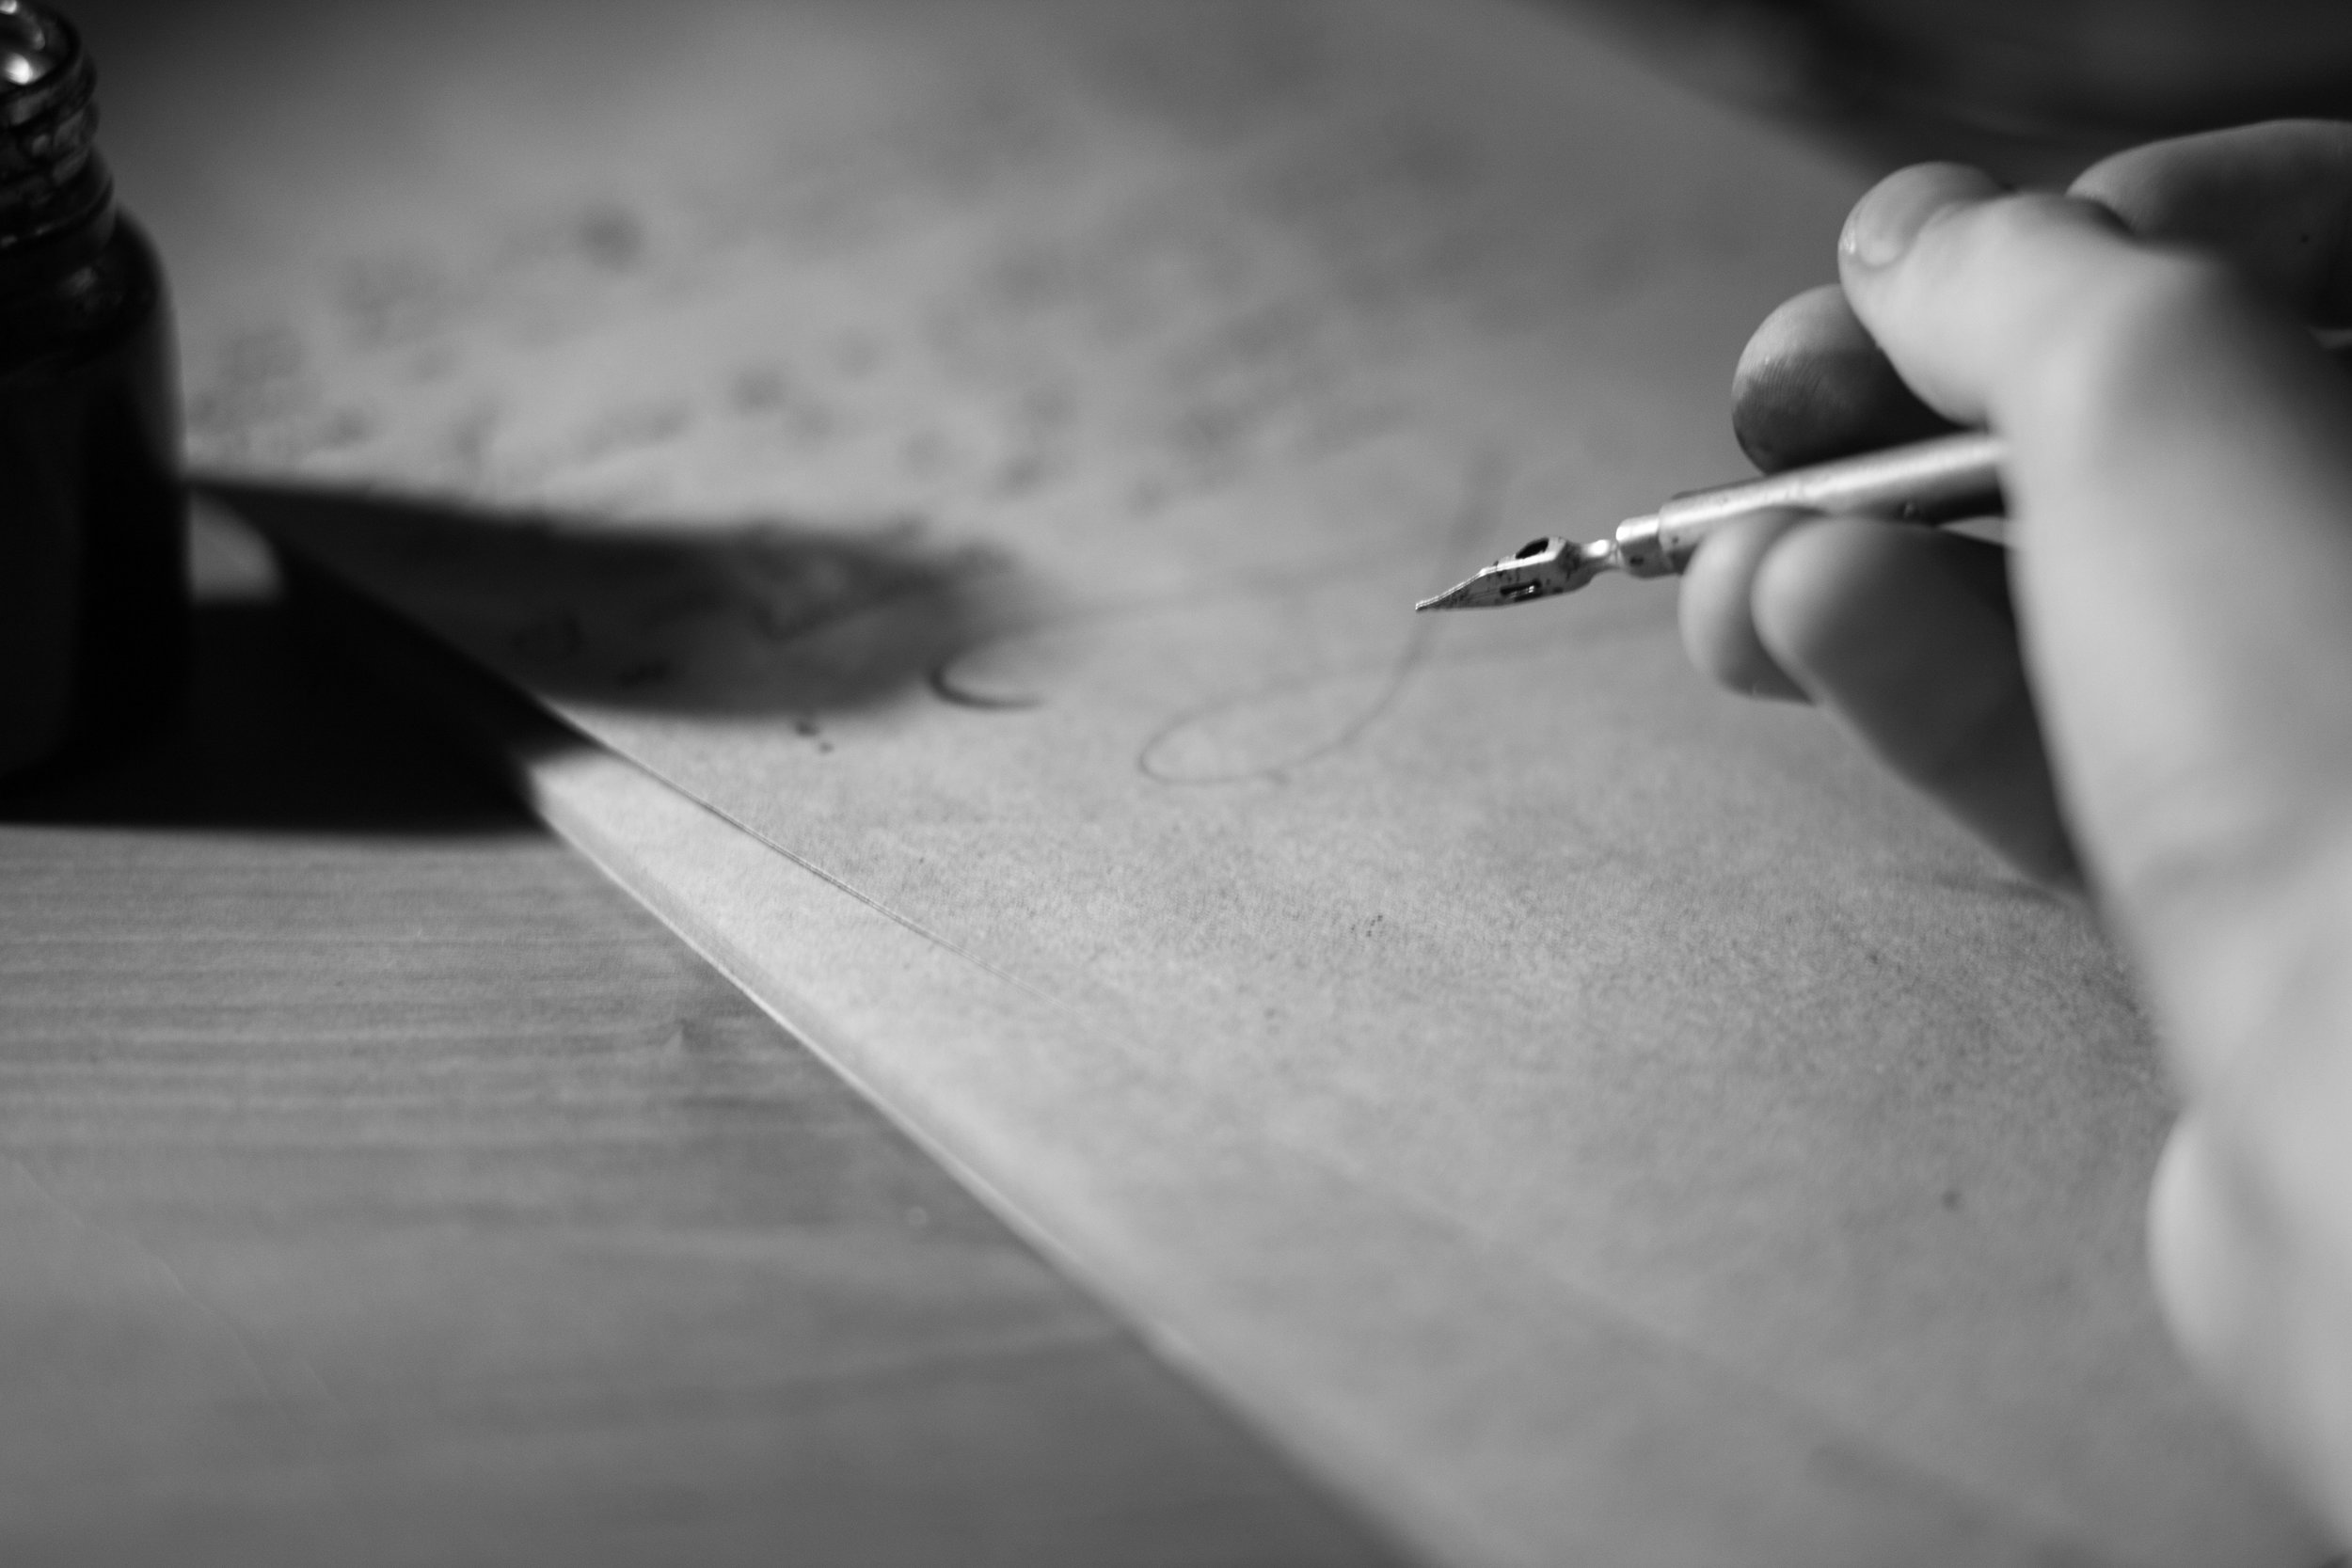 A hand holding a pen above a sheet of paper